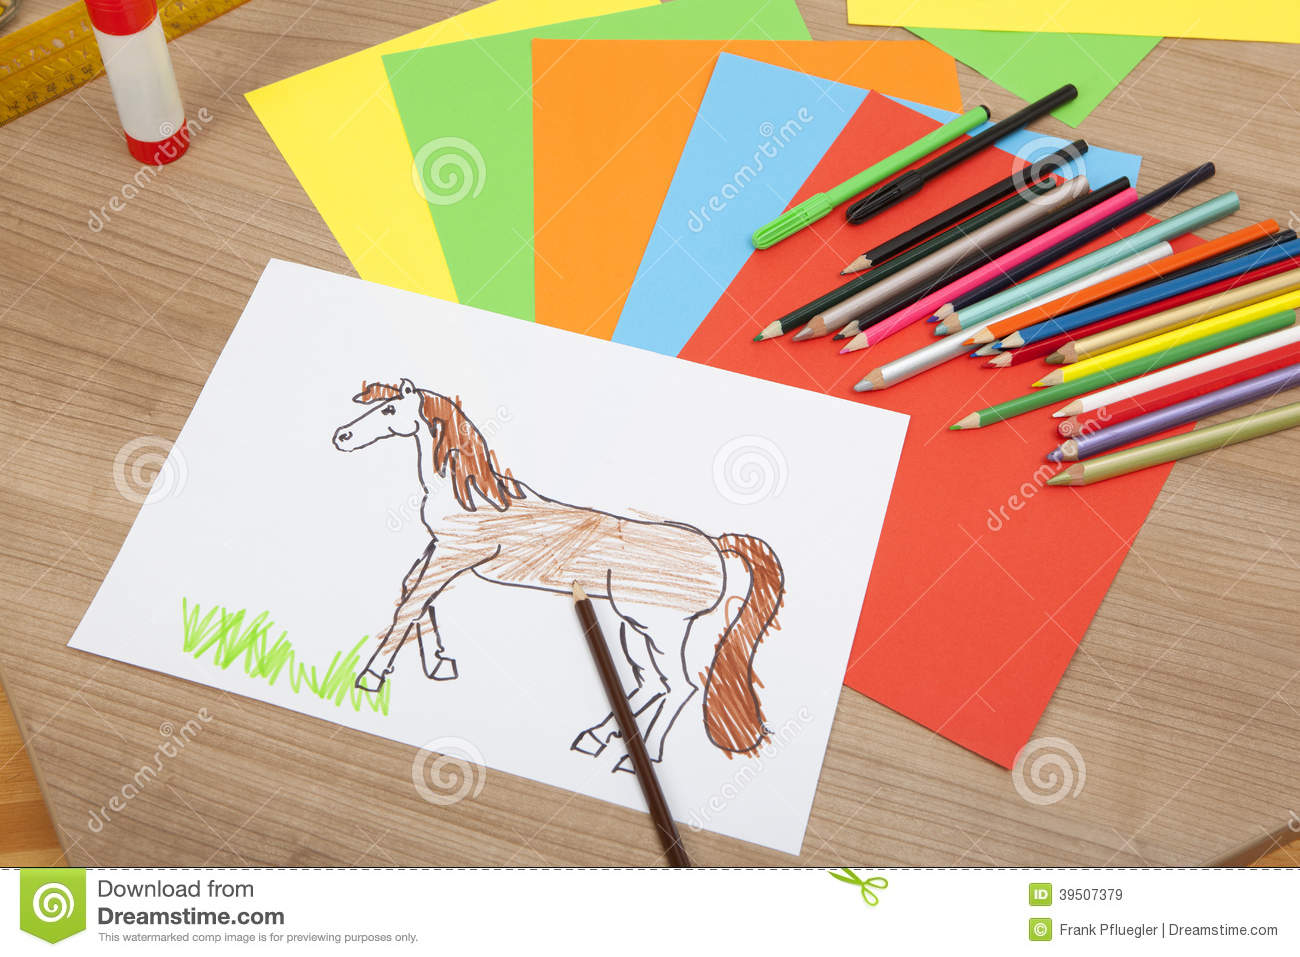 A painted pony